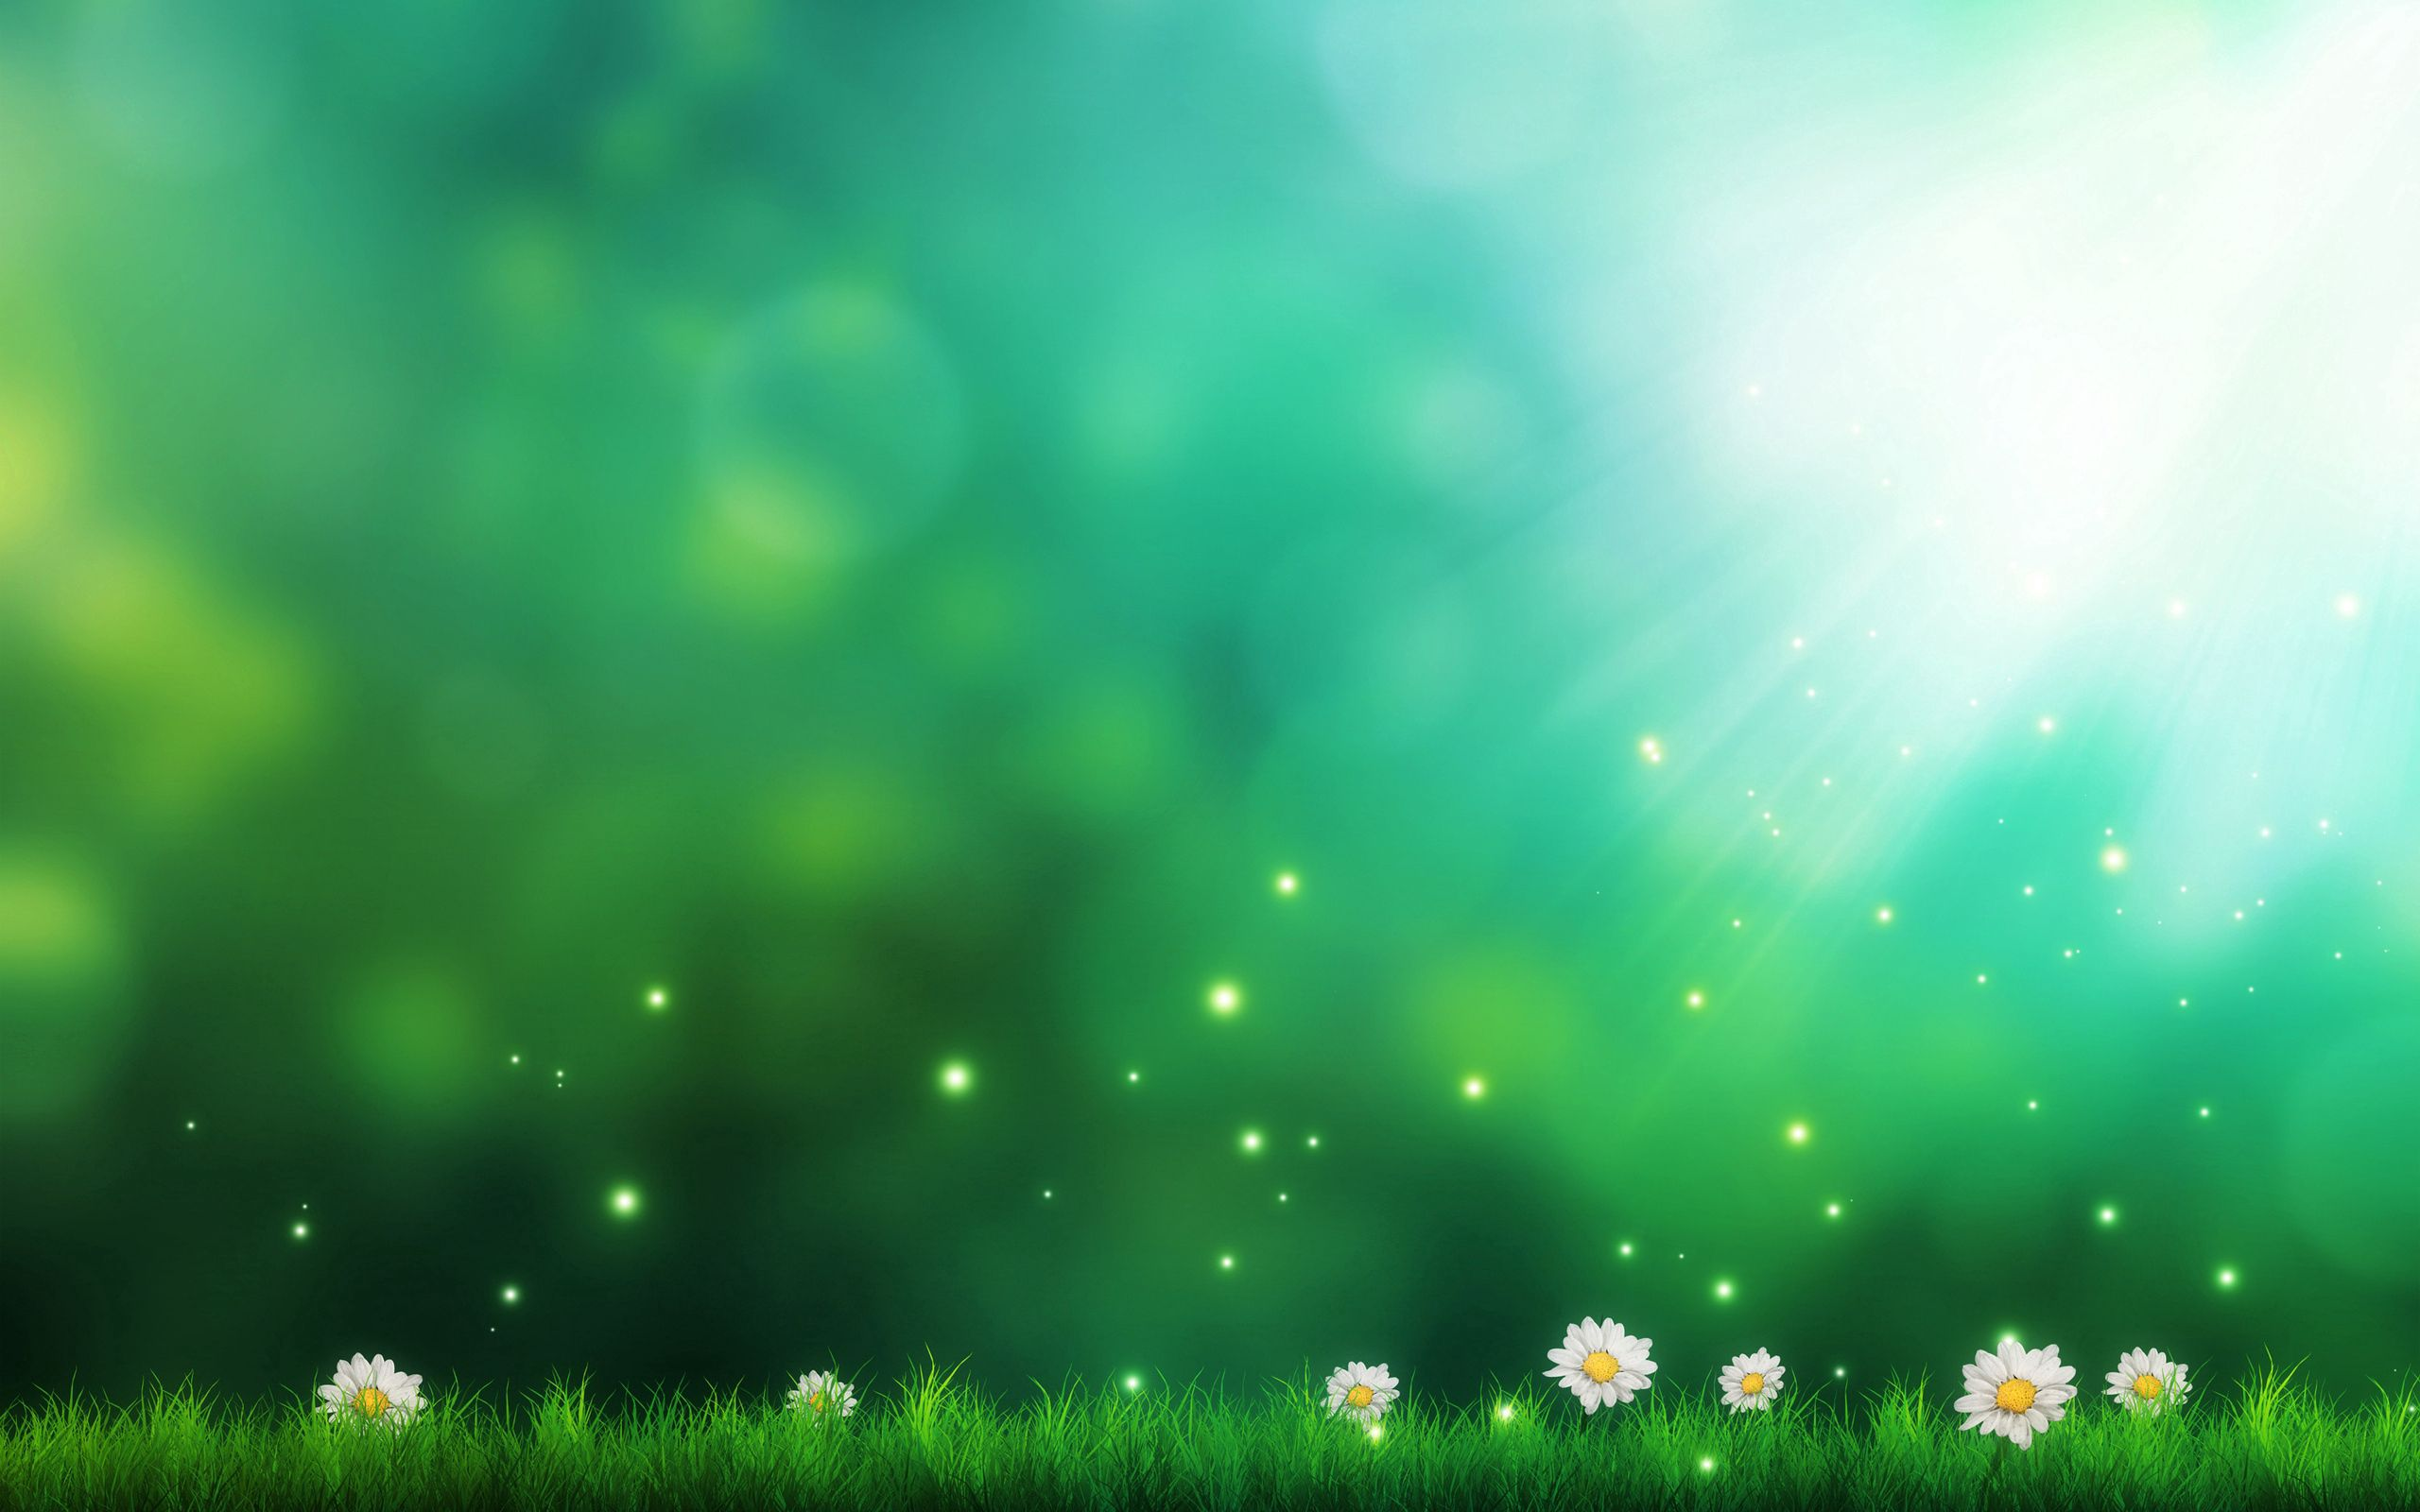 72187 download wallpaper Light, Miscellanea, Grass, Art, Camomile, Lights, Shine, Miscellaneous screensavers and pictures for free